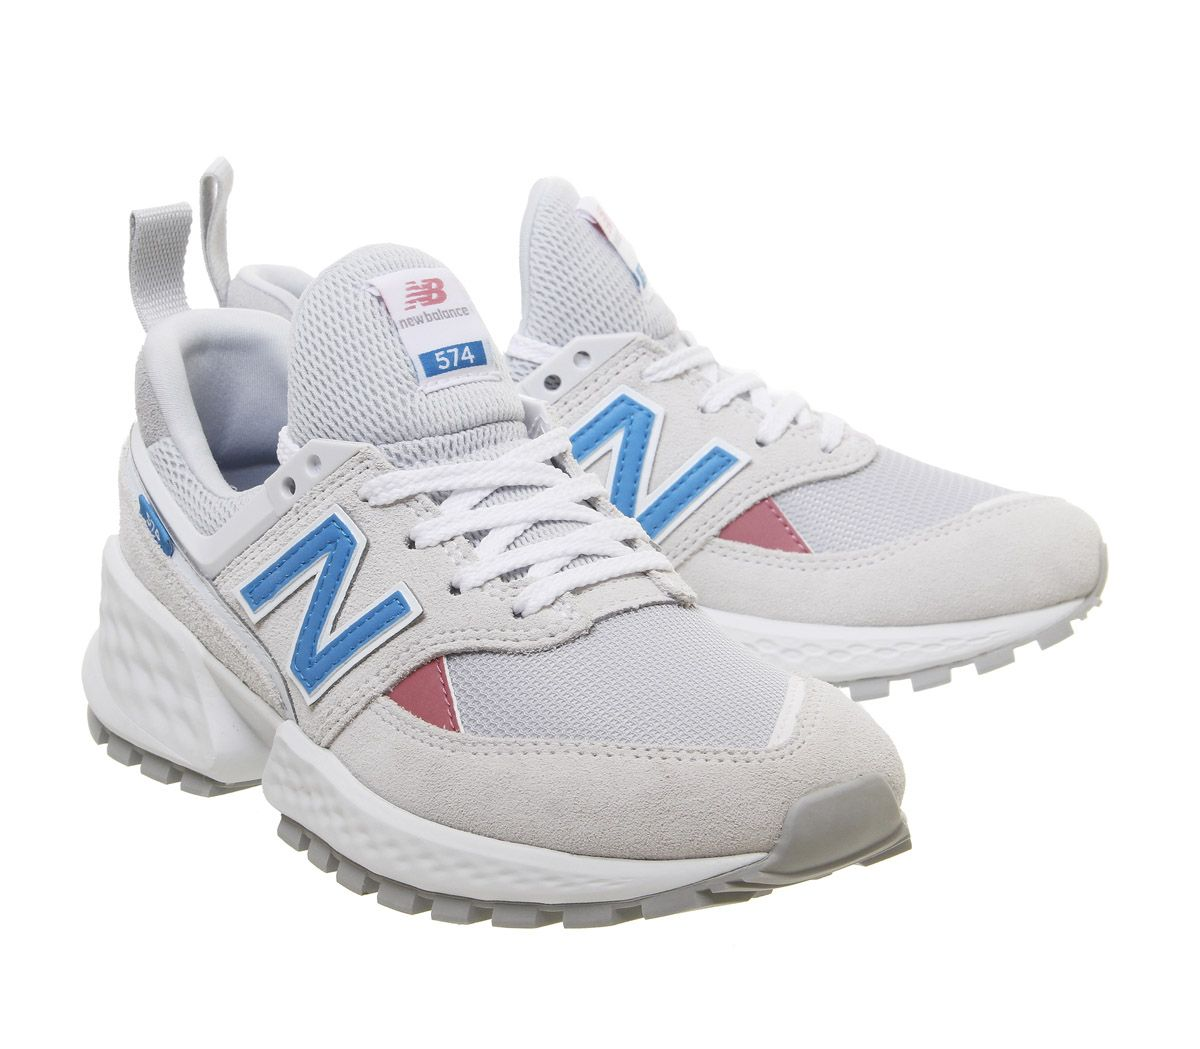 the best attitude a269c b6ab7 SENTINELLE Femmes New Balance 574 Sport V2 Baskets Chaussure Baskets Artic  Fox Deep Ozone Blue. SENTINELLE Vignettes Photo 8